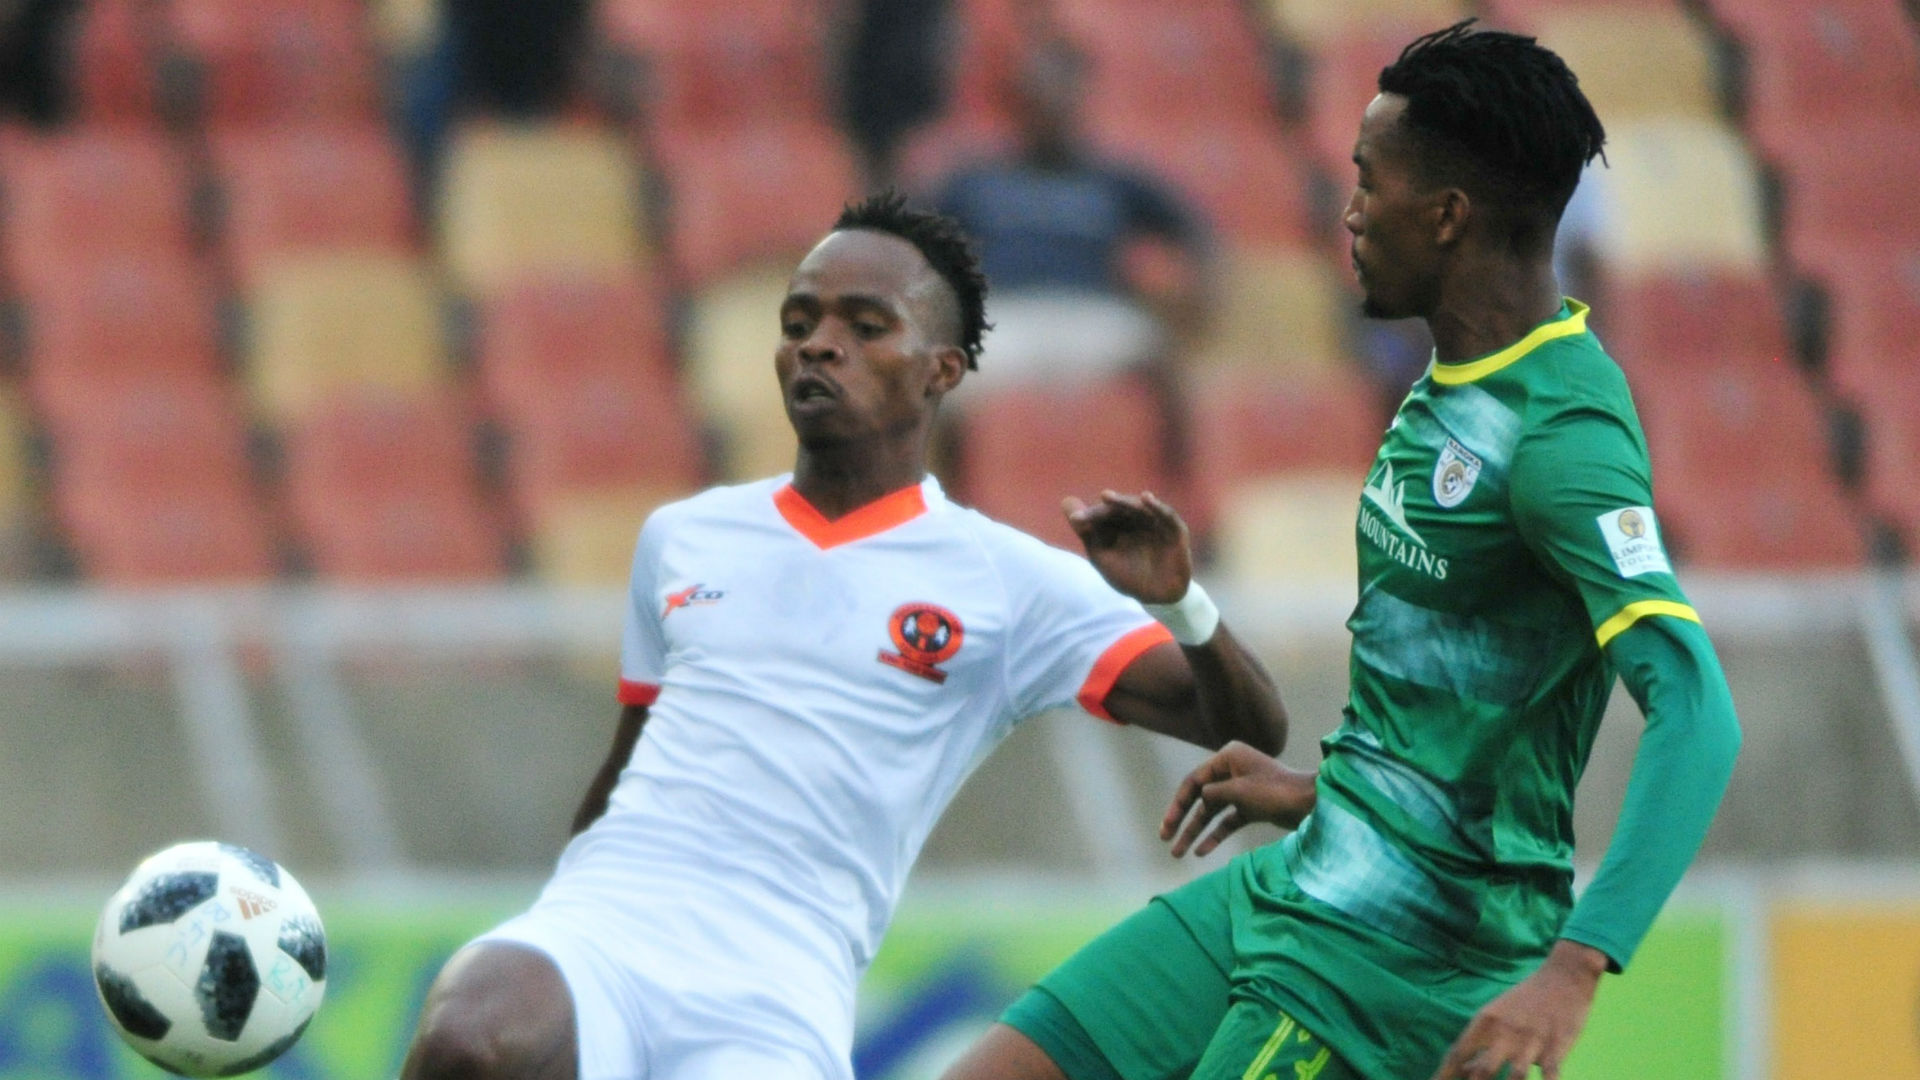 Mpho Mvelase of Polokwane City and Matome Mabeba of Baroka FC, March 2019